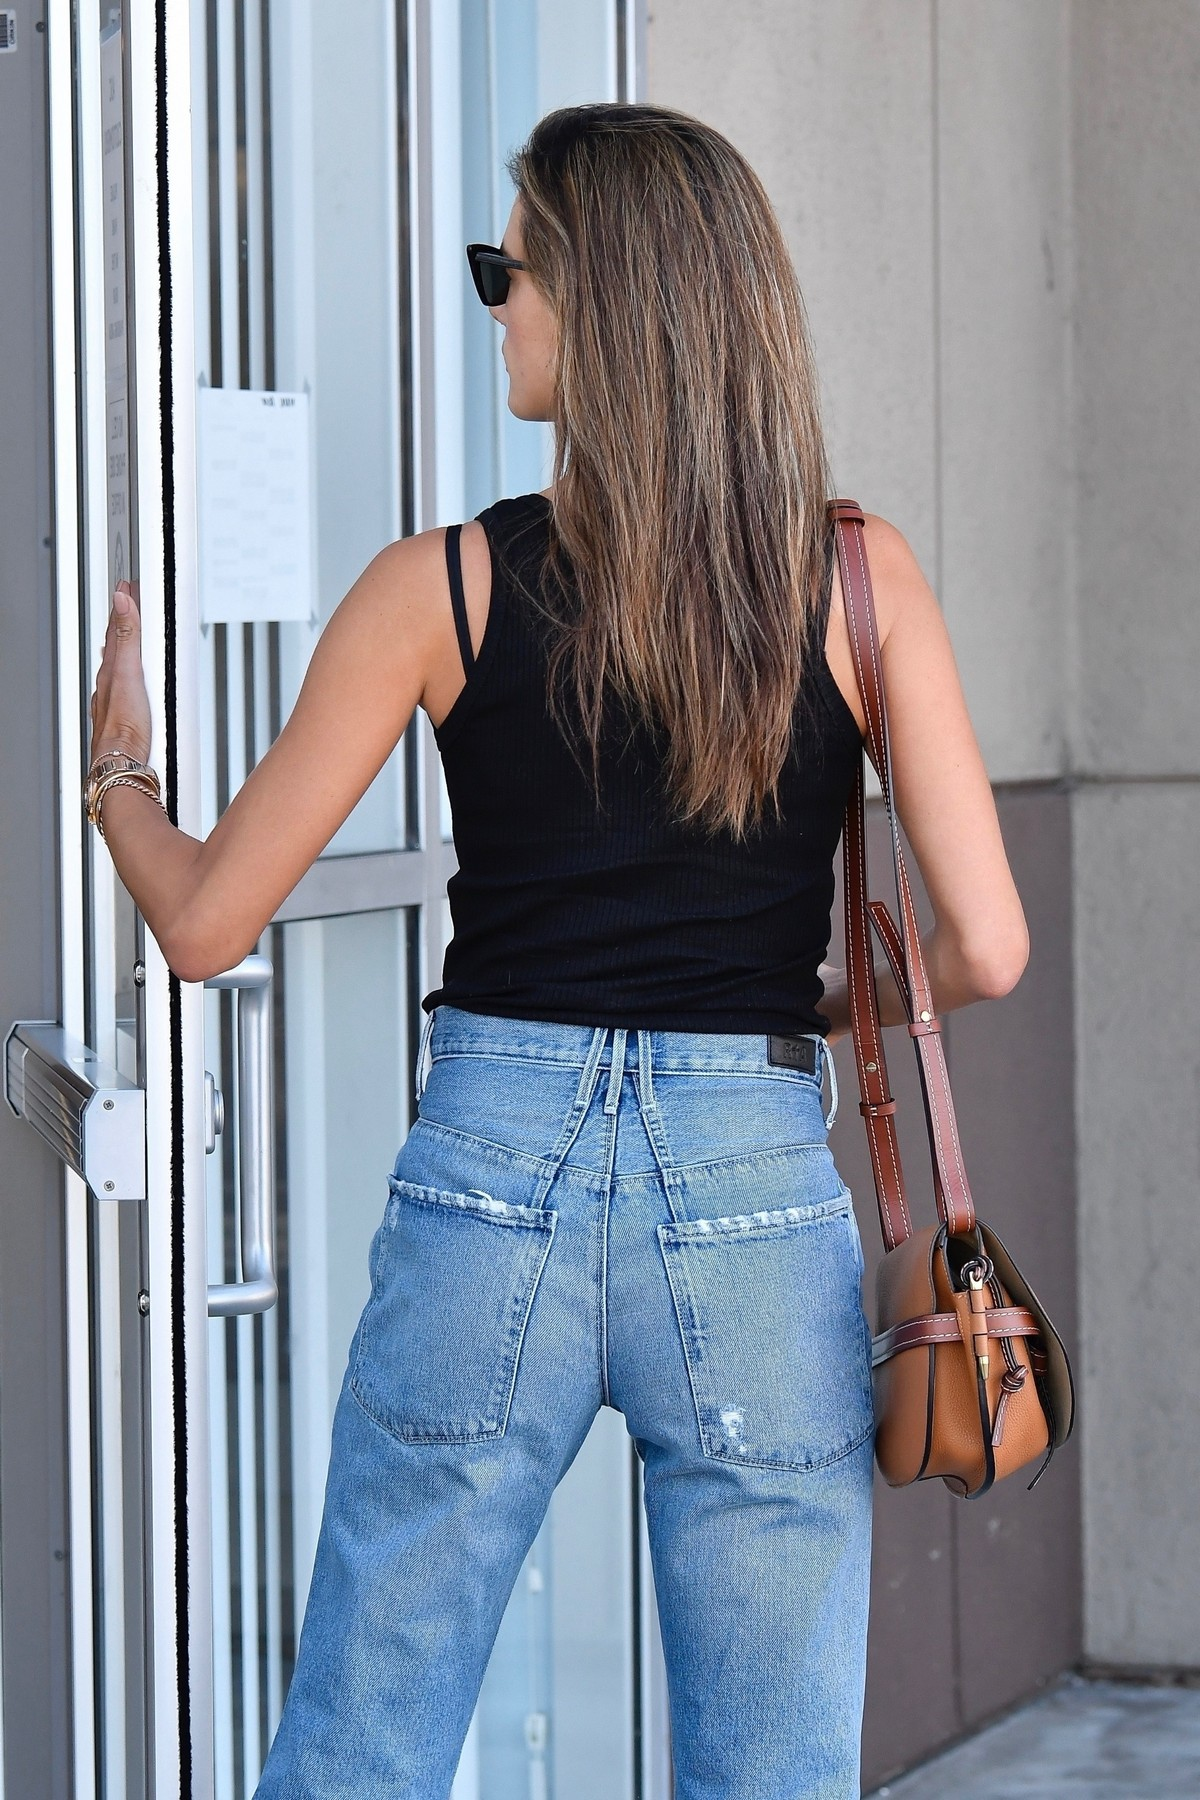 Alessandra Ambrosio in Black Top and Blue Jeans out in Los Angeles 2019/11/18 17